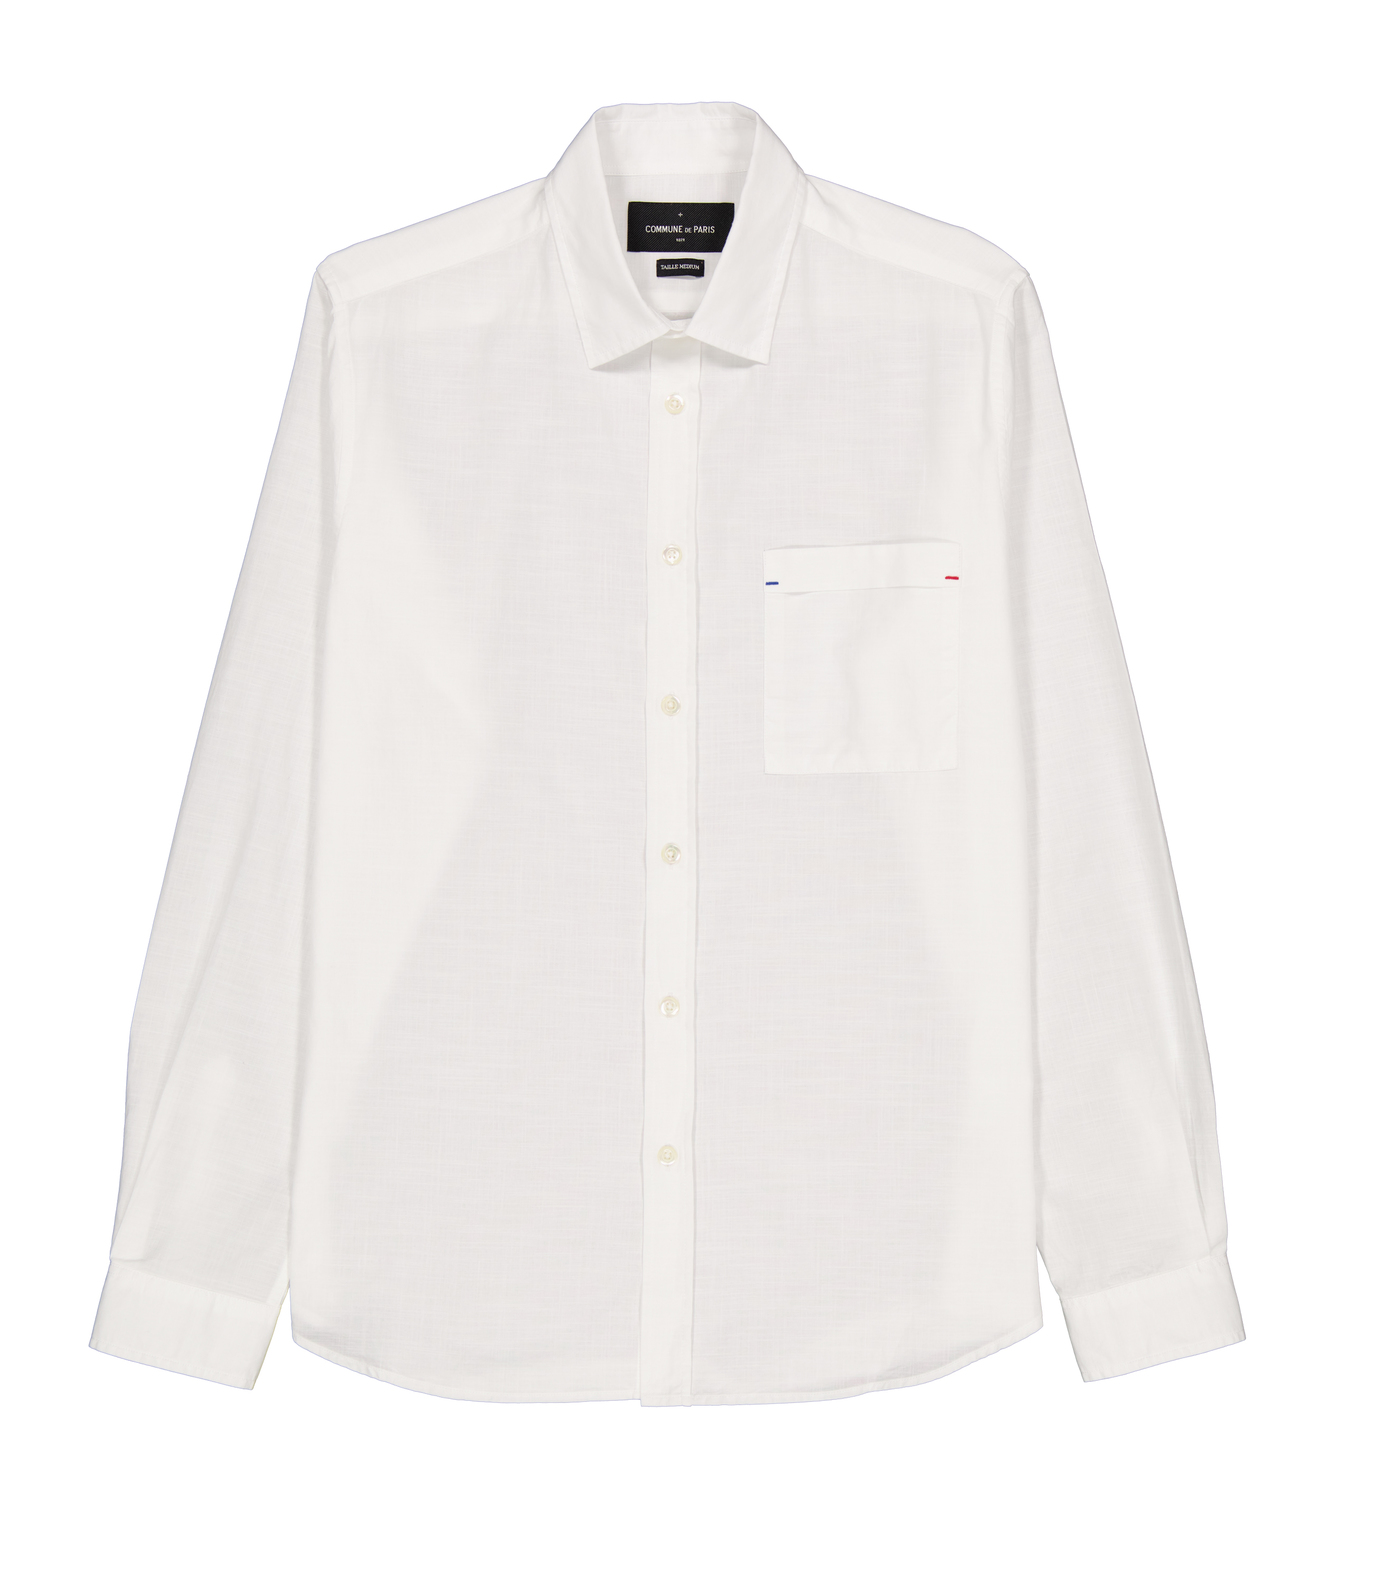 SHIRT ROSSEL19-CH - White chambray